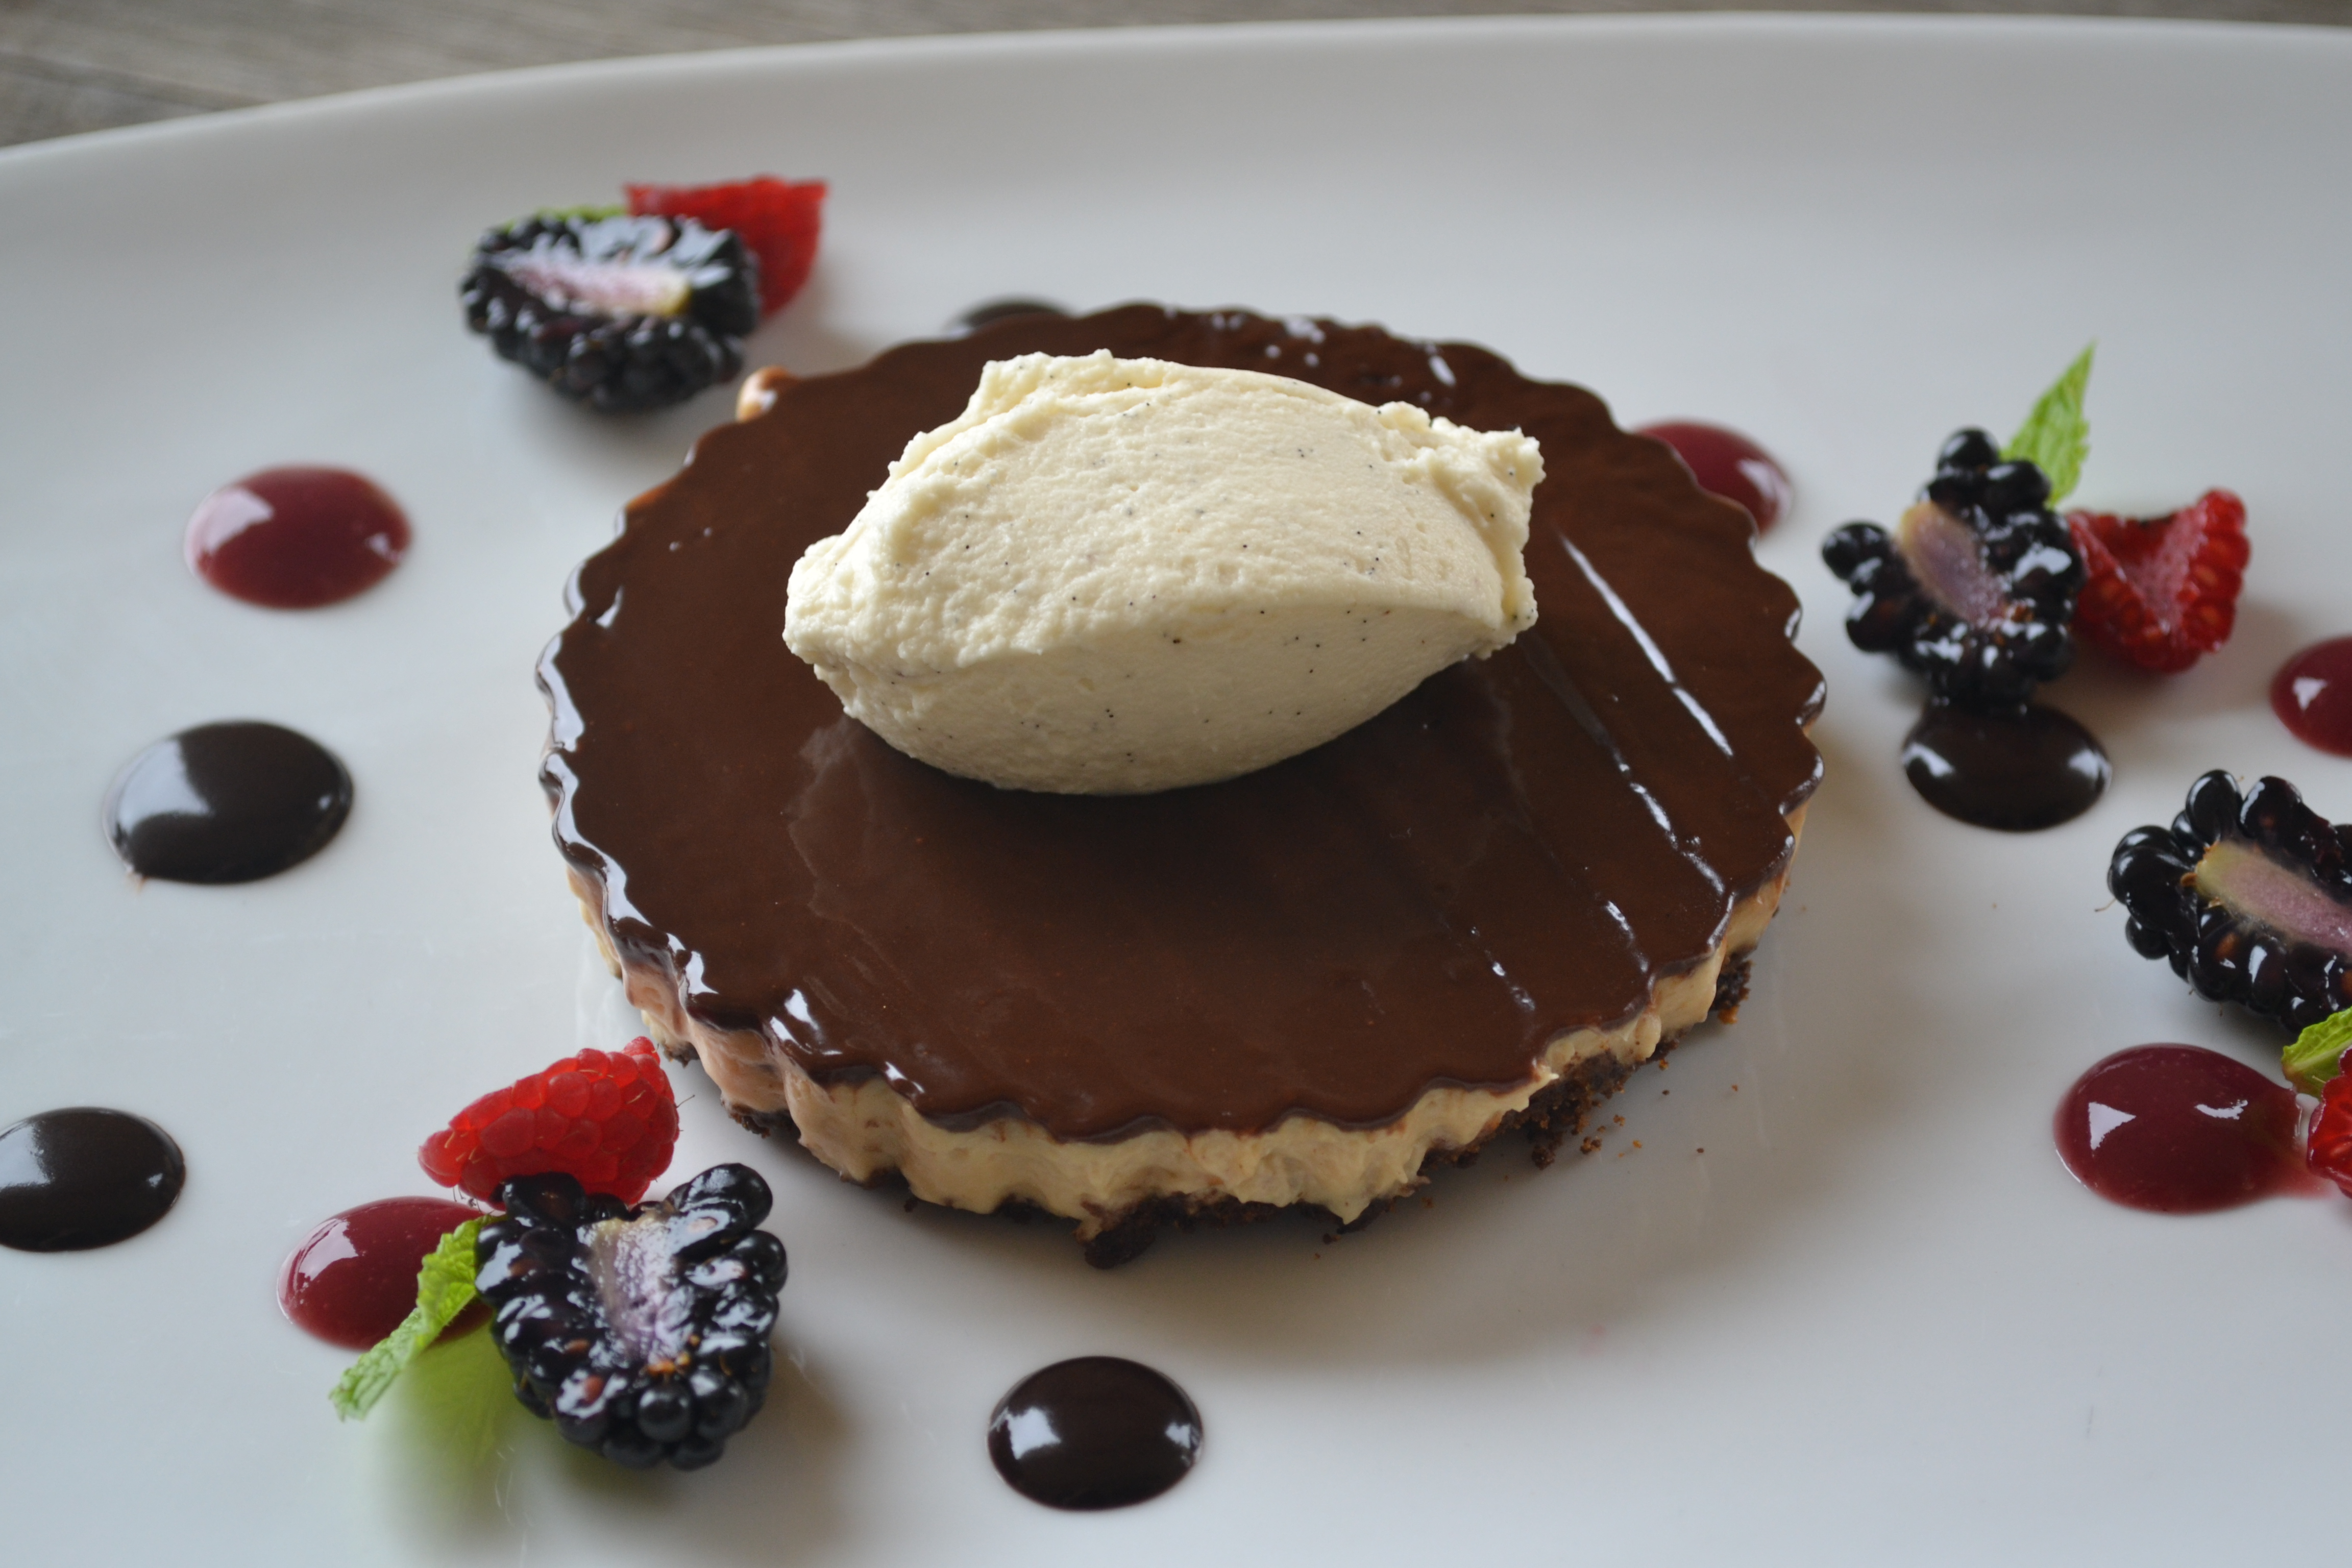 Chocolate & Peanut Butter Torte, Vanilla Mousse Spiced Chocolate ...